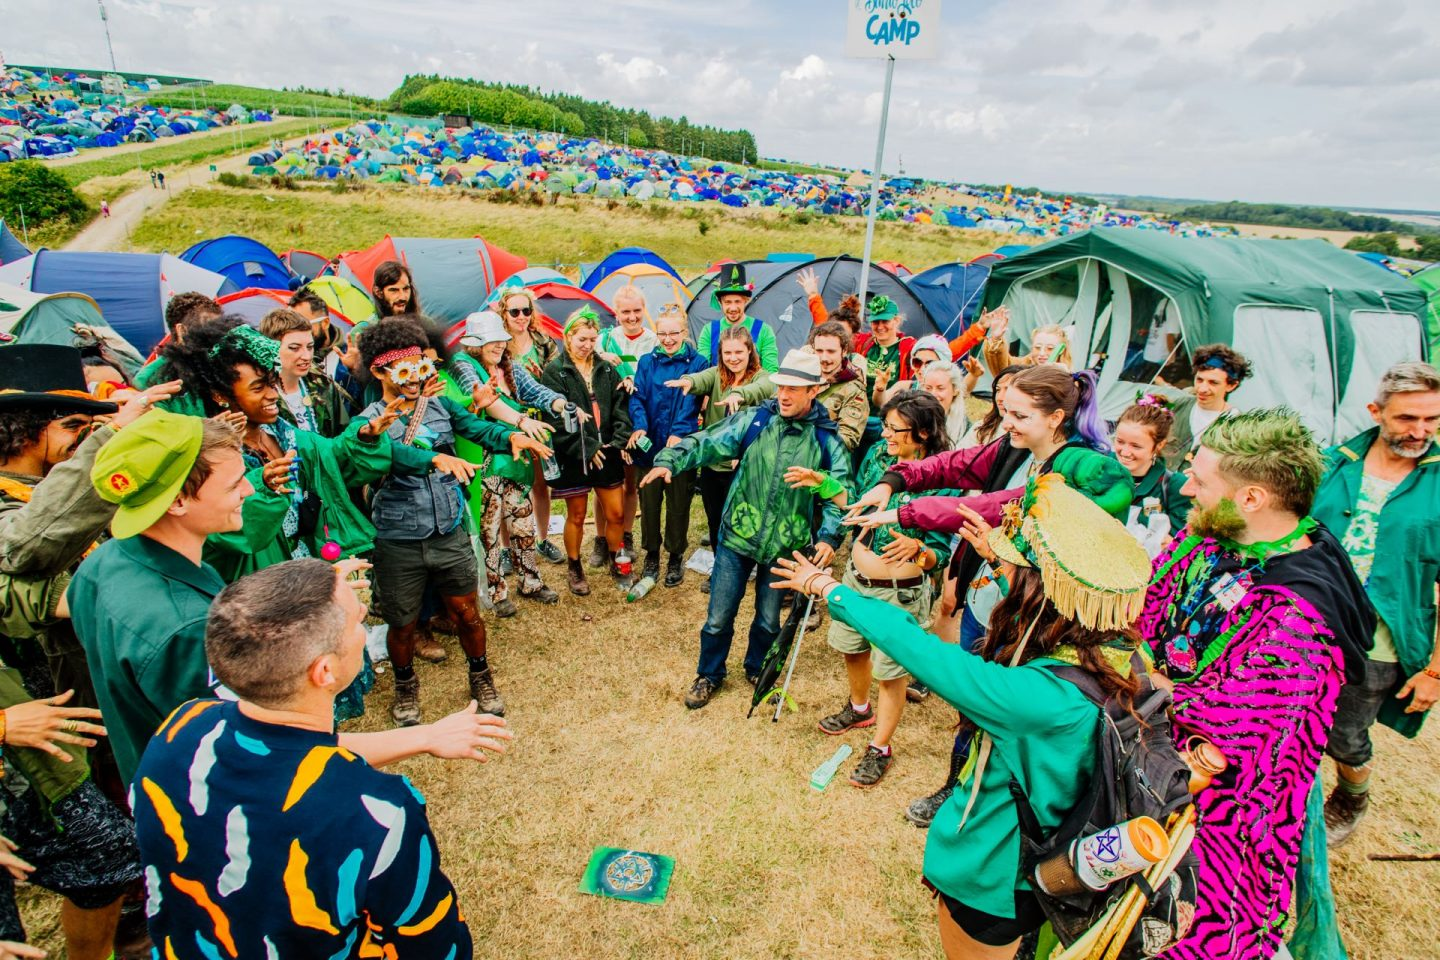 Eco Warriors promoting festival sustainability at Boomtown